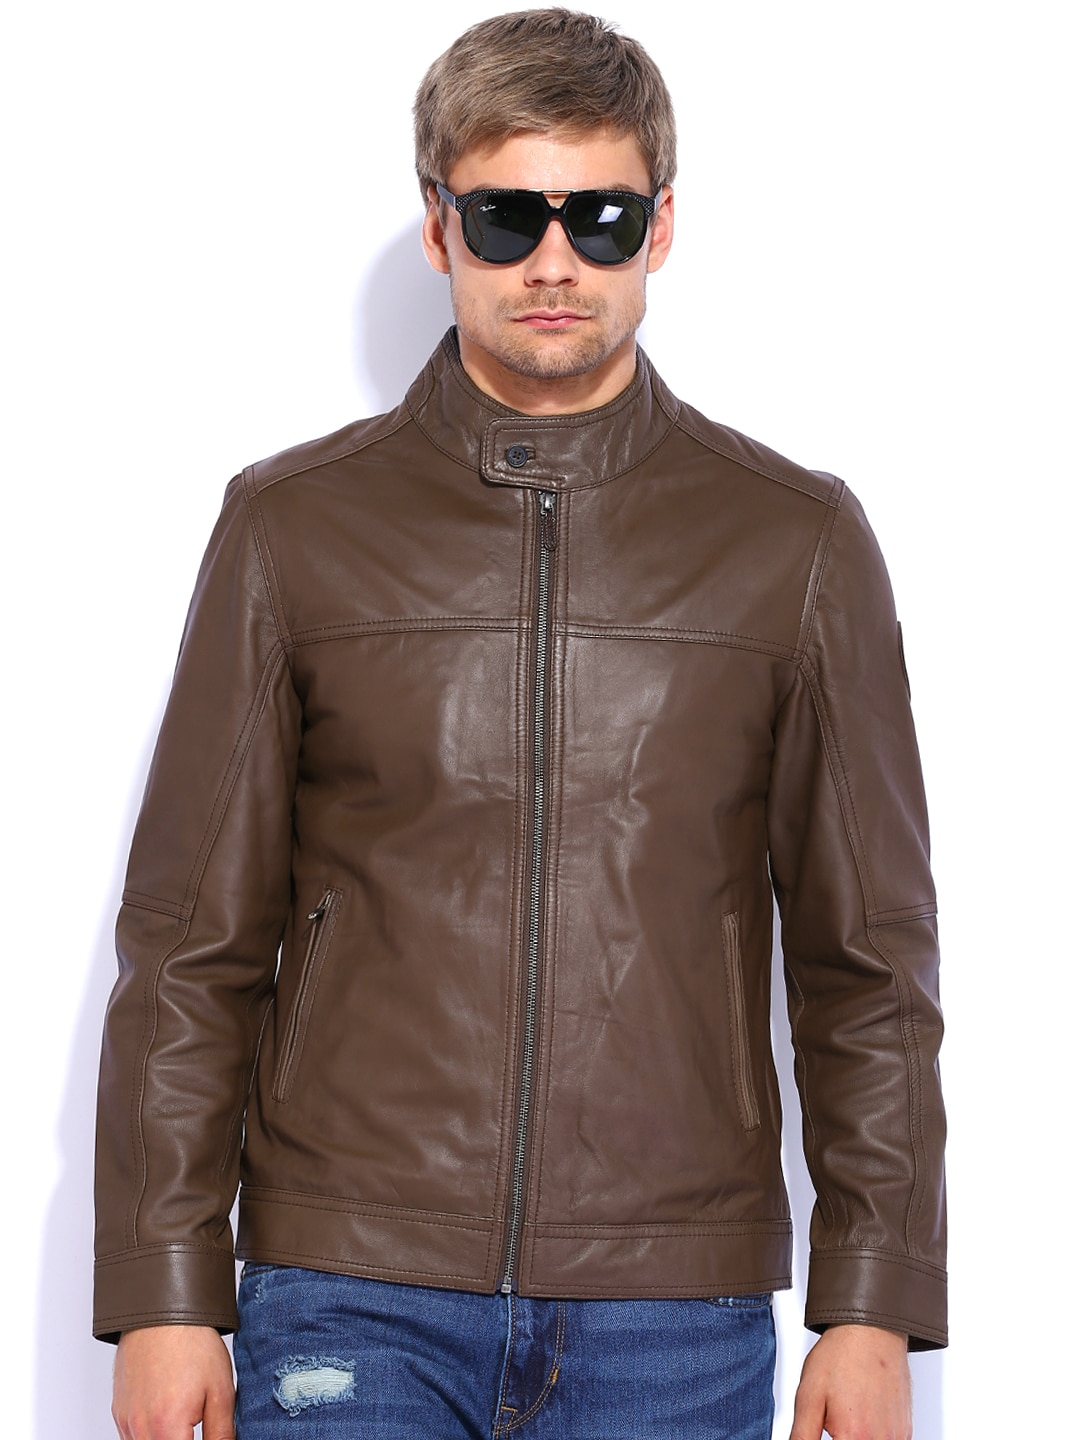 Shop Men's and Women's Leather Jackets with Free Shipping! Explore Our Stylish Handbags, Hats, Gloves, Wallets, Briefcases and Travel Items. Huge Selection, Quality Leather and Great Prices.